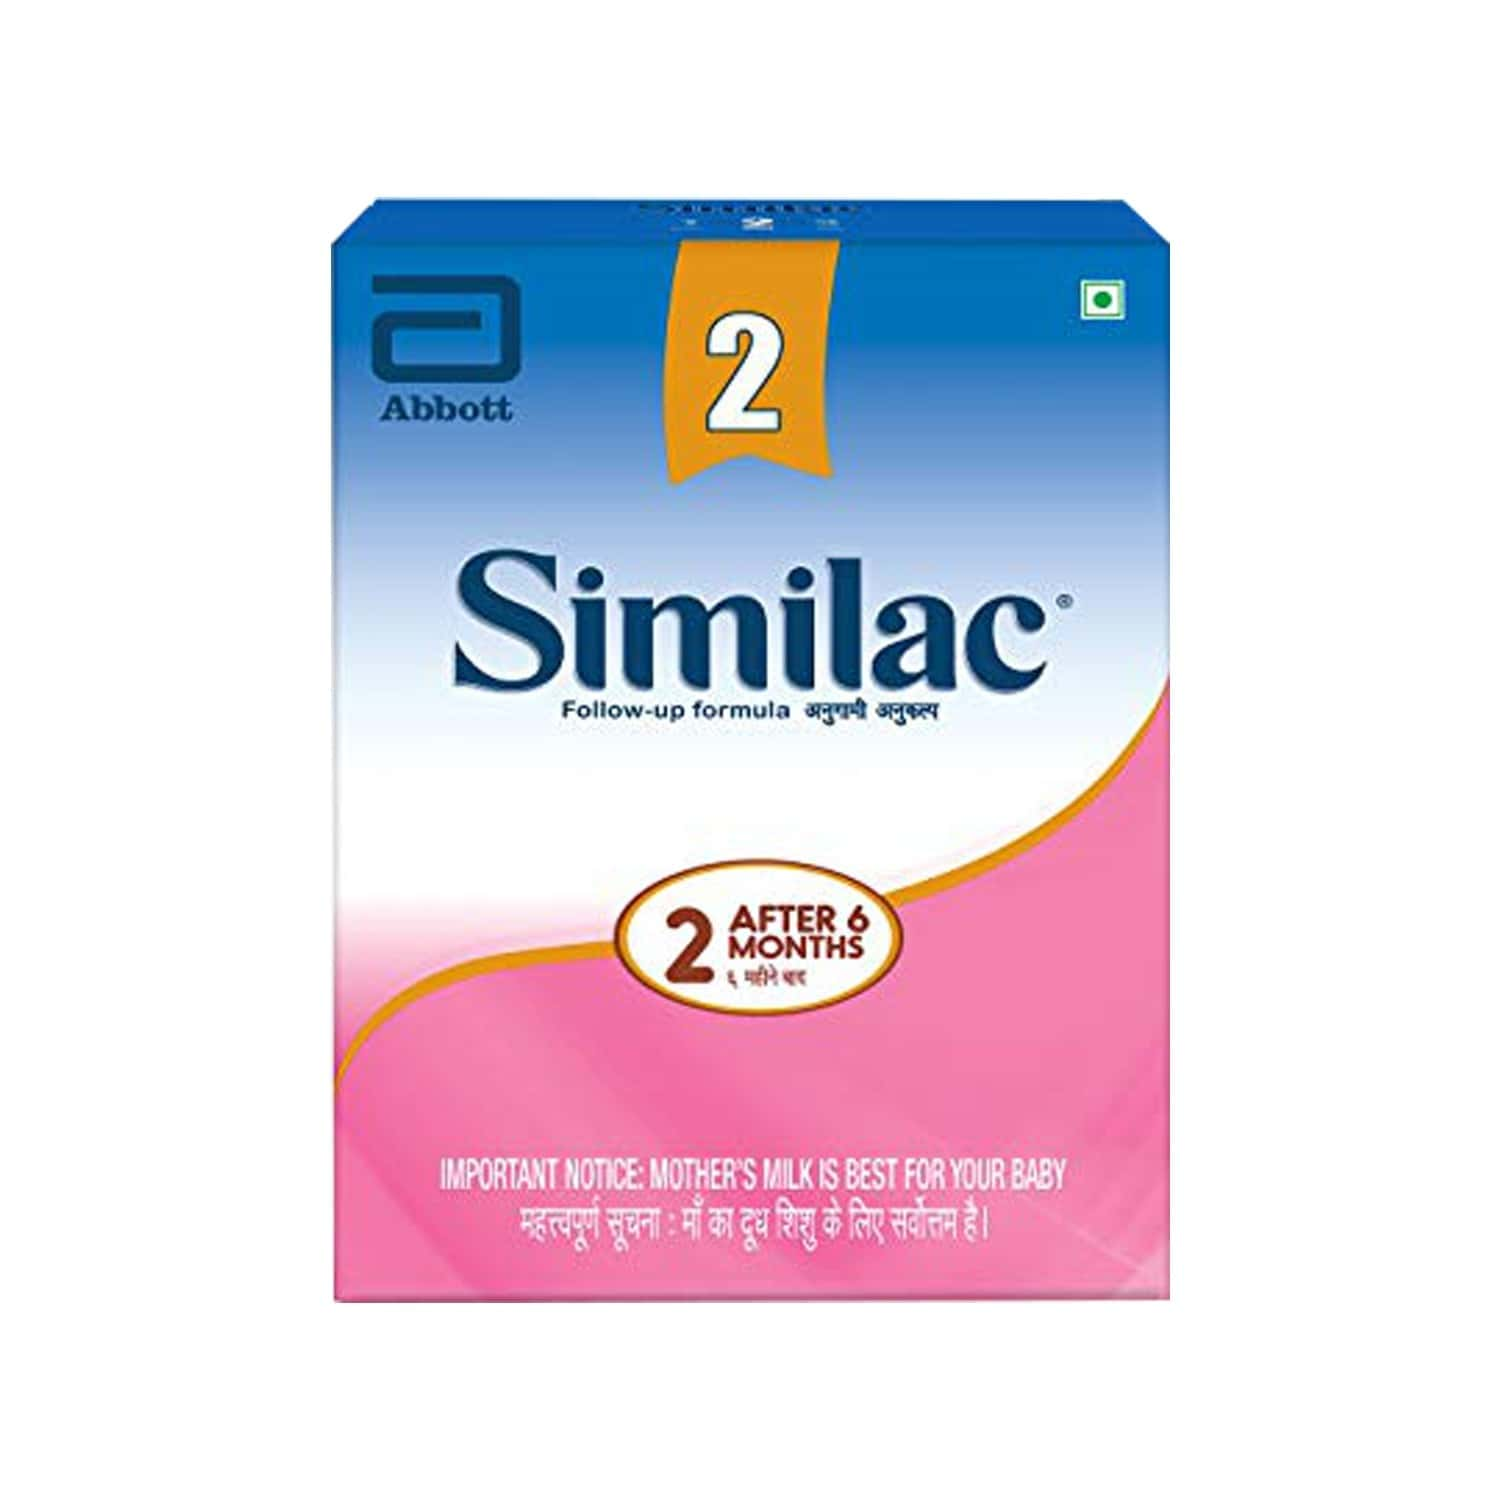 Similac Baby Food Stage 2 Follow-up Infant Formula (after 6 Months) Refill Of 400 G